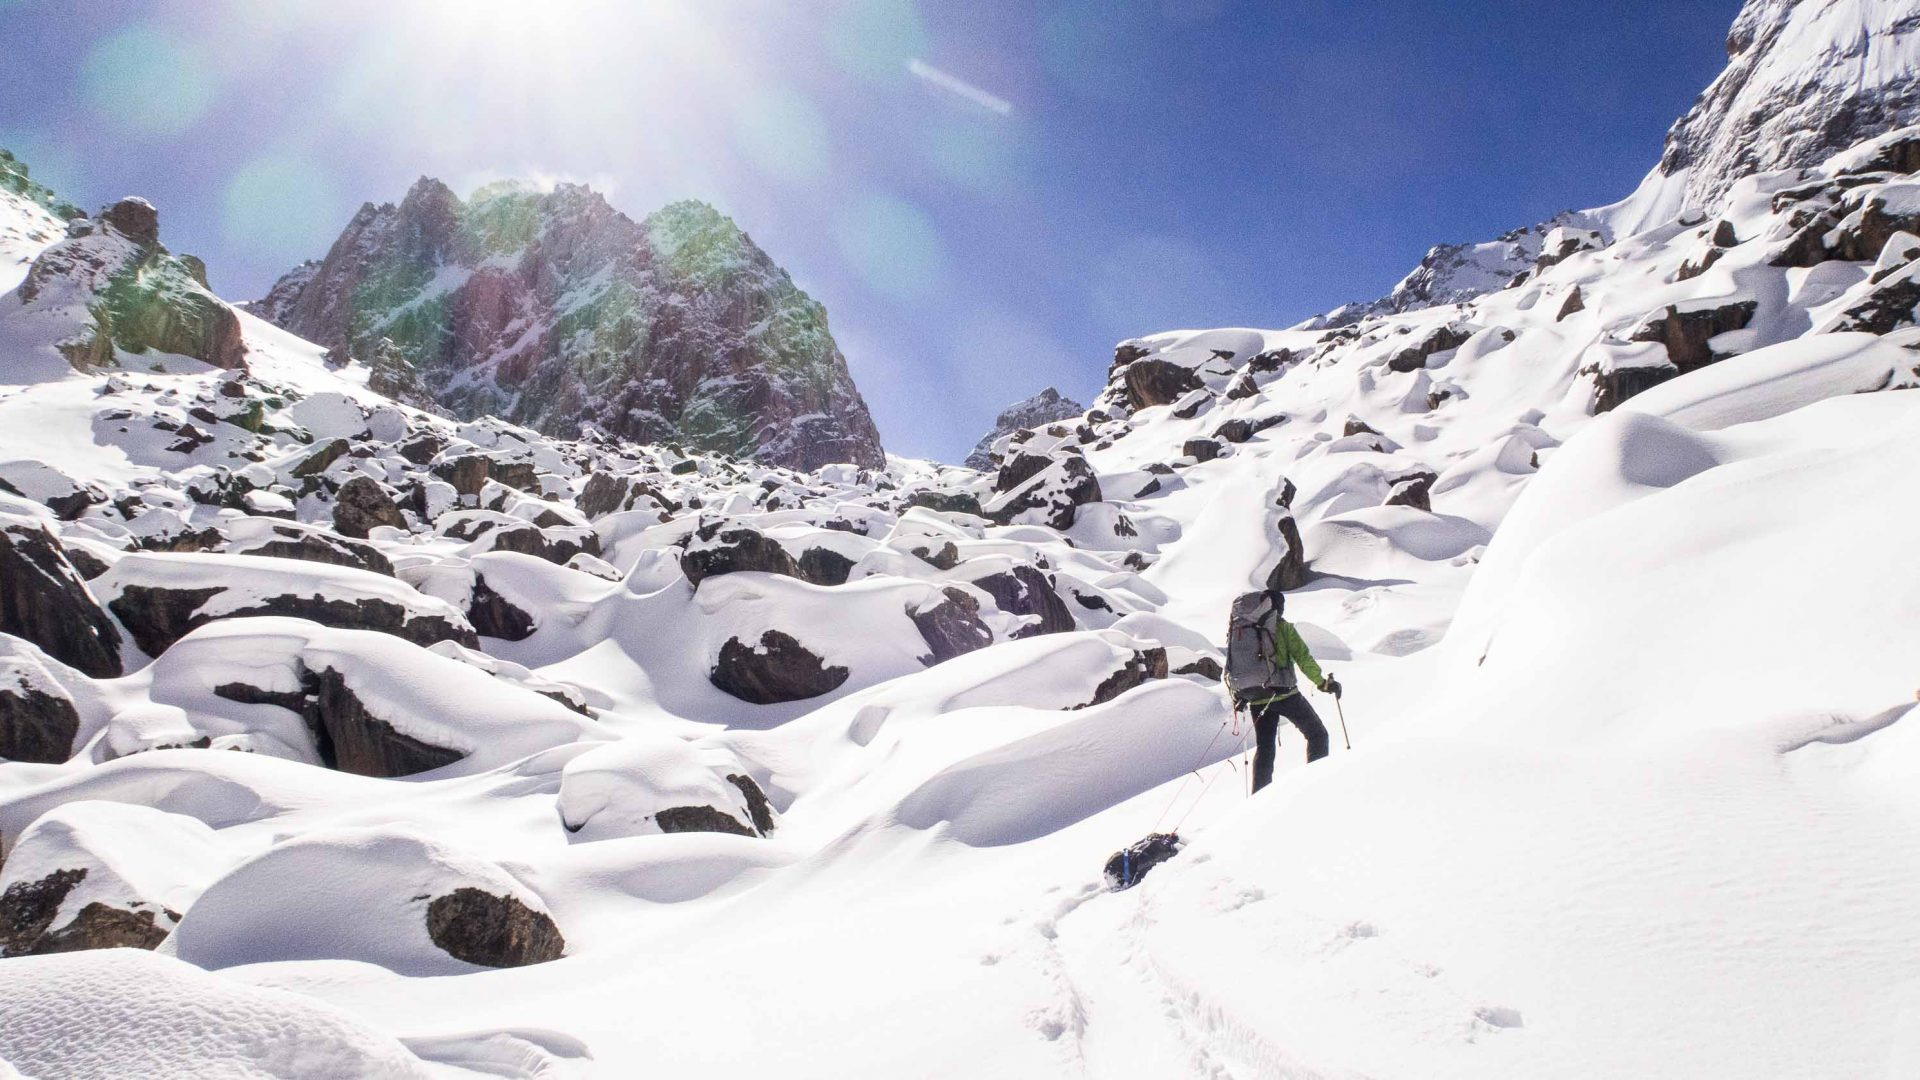 Forget Whistler, this is Tajikistan's untouched, off-piste playground